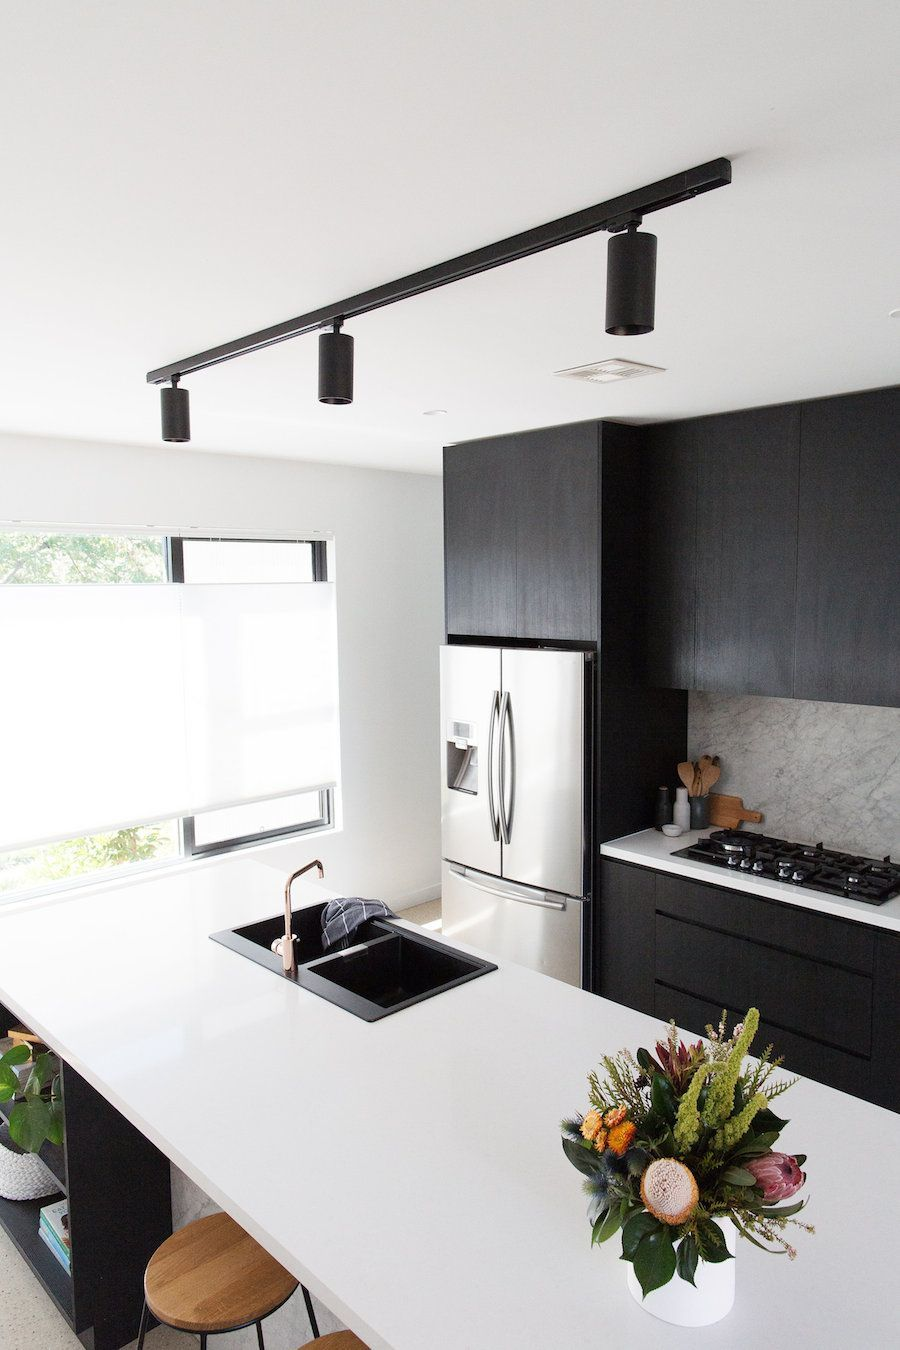 Gina S Home New Black Track Ceiling Mount Light In The Kitchen